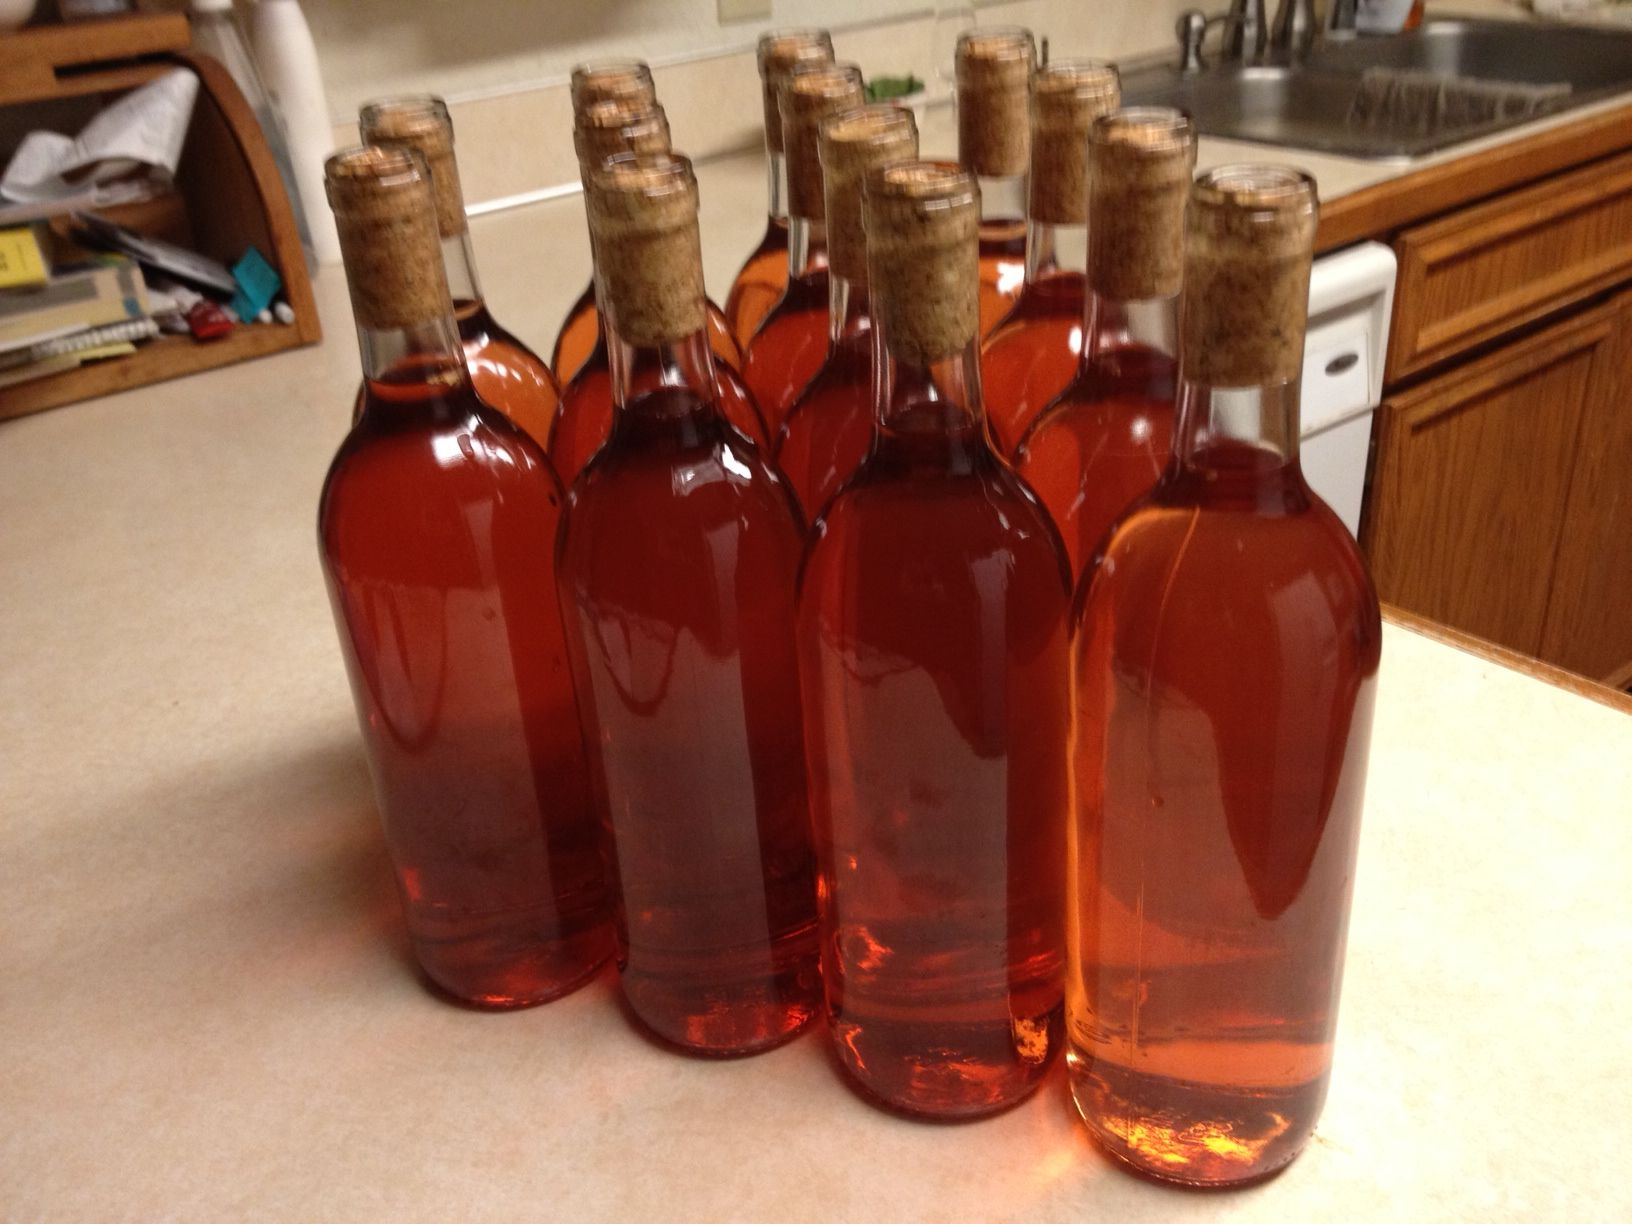 May S Salmonberry Wine Bottled Tonight Very Pretty Color Of Rose And Dry Hint Of Raspberry Should Be Ready To Drink Next Su Bottle Wine Bottle Wild Berry